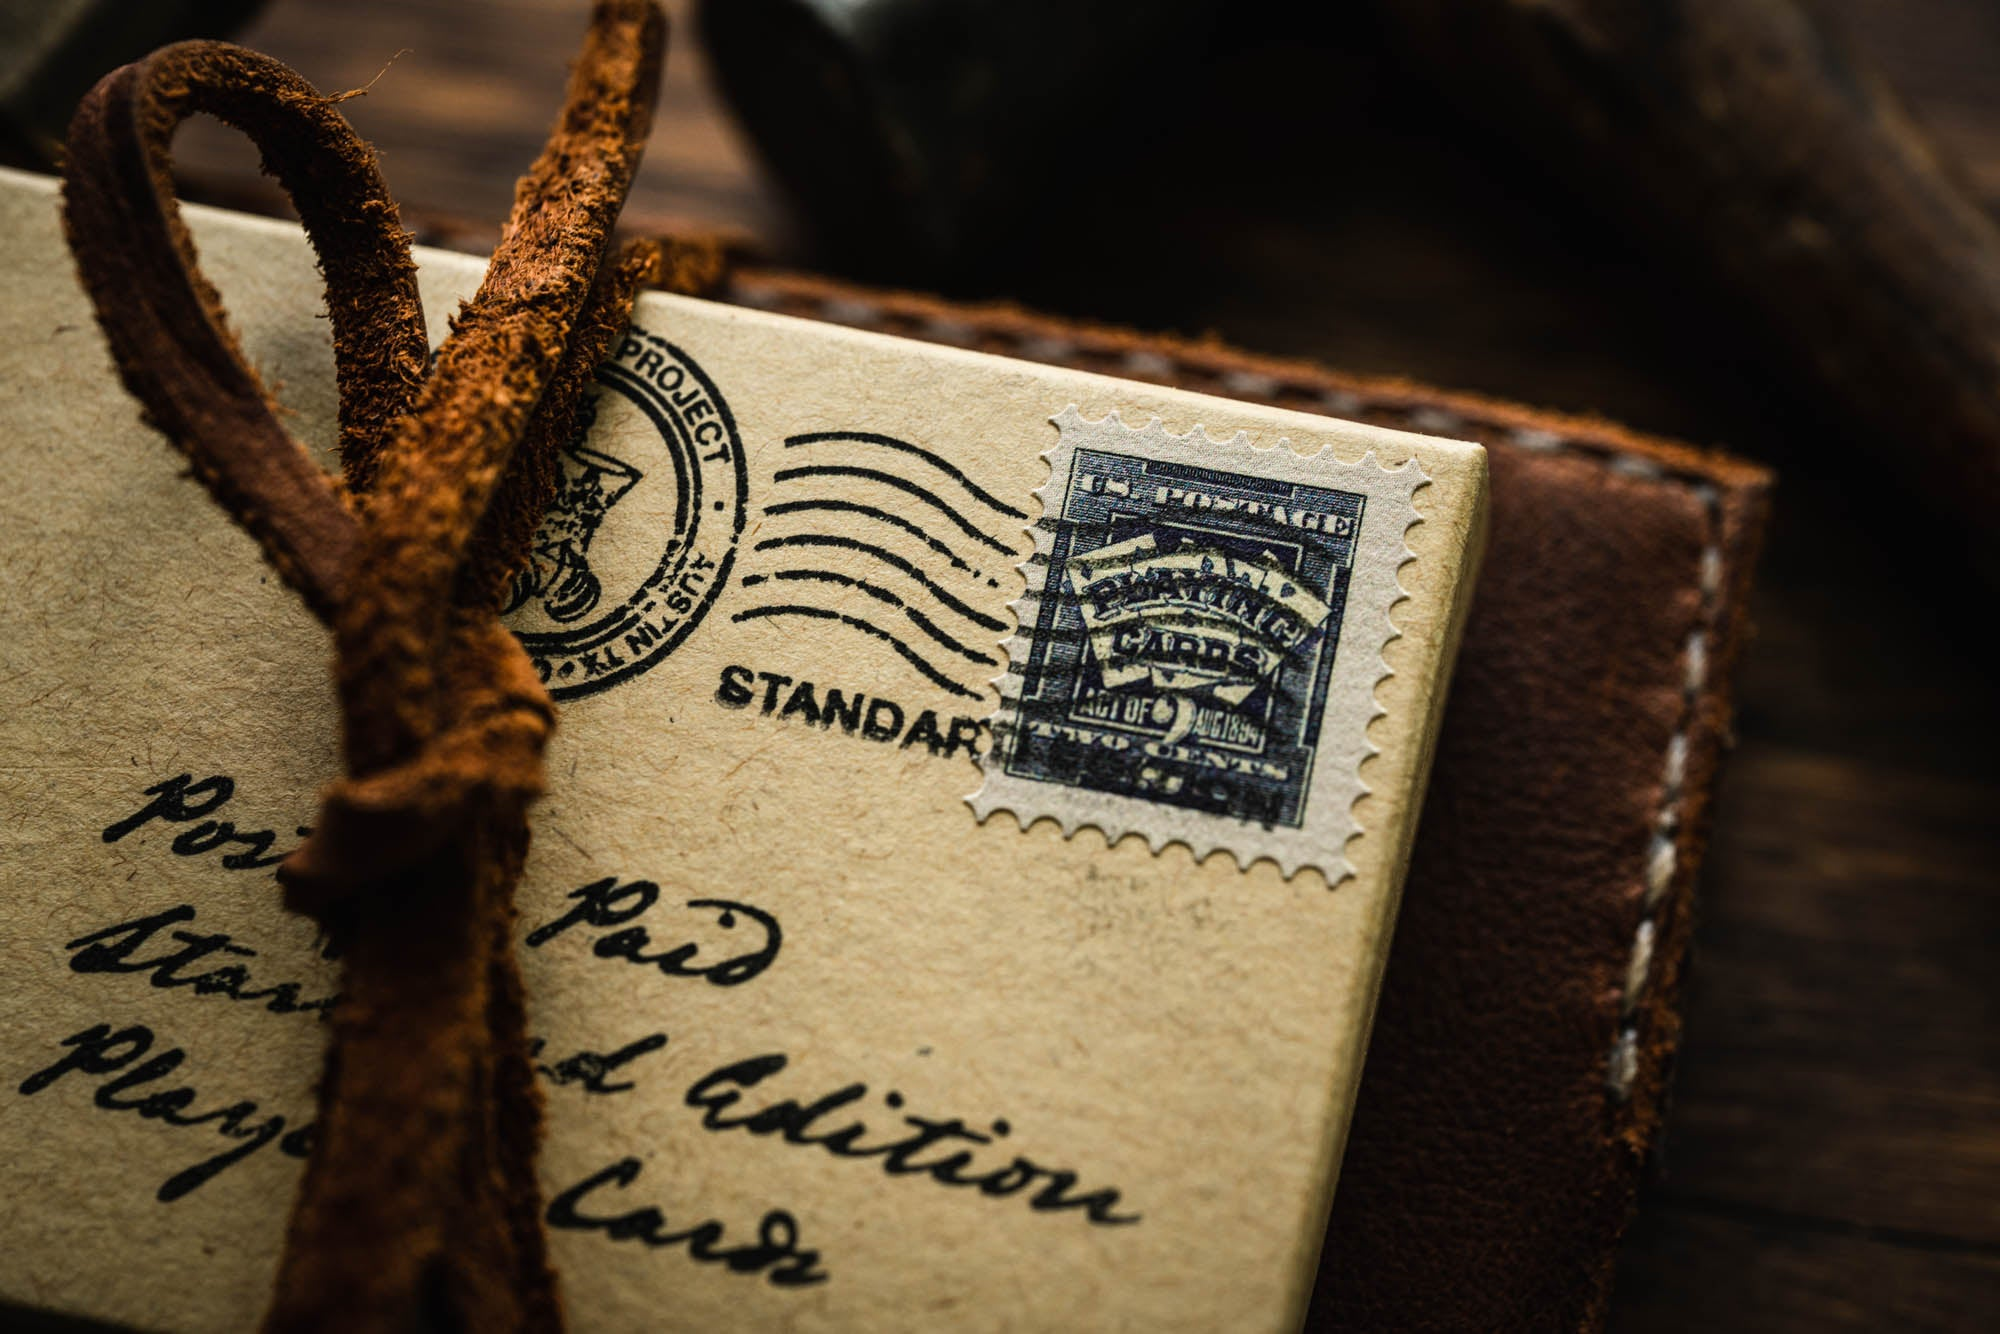 Postage Paid - Standard Edition